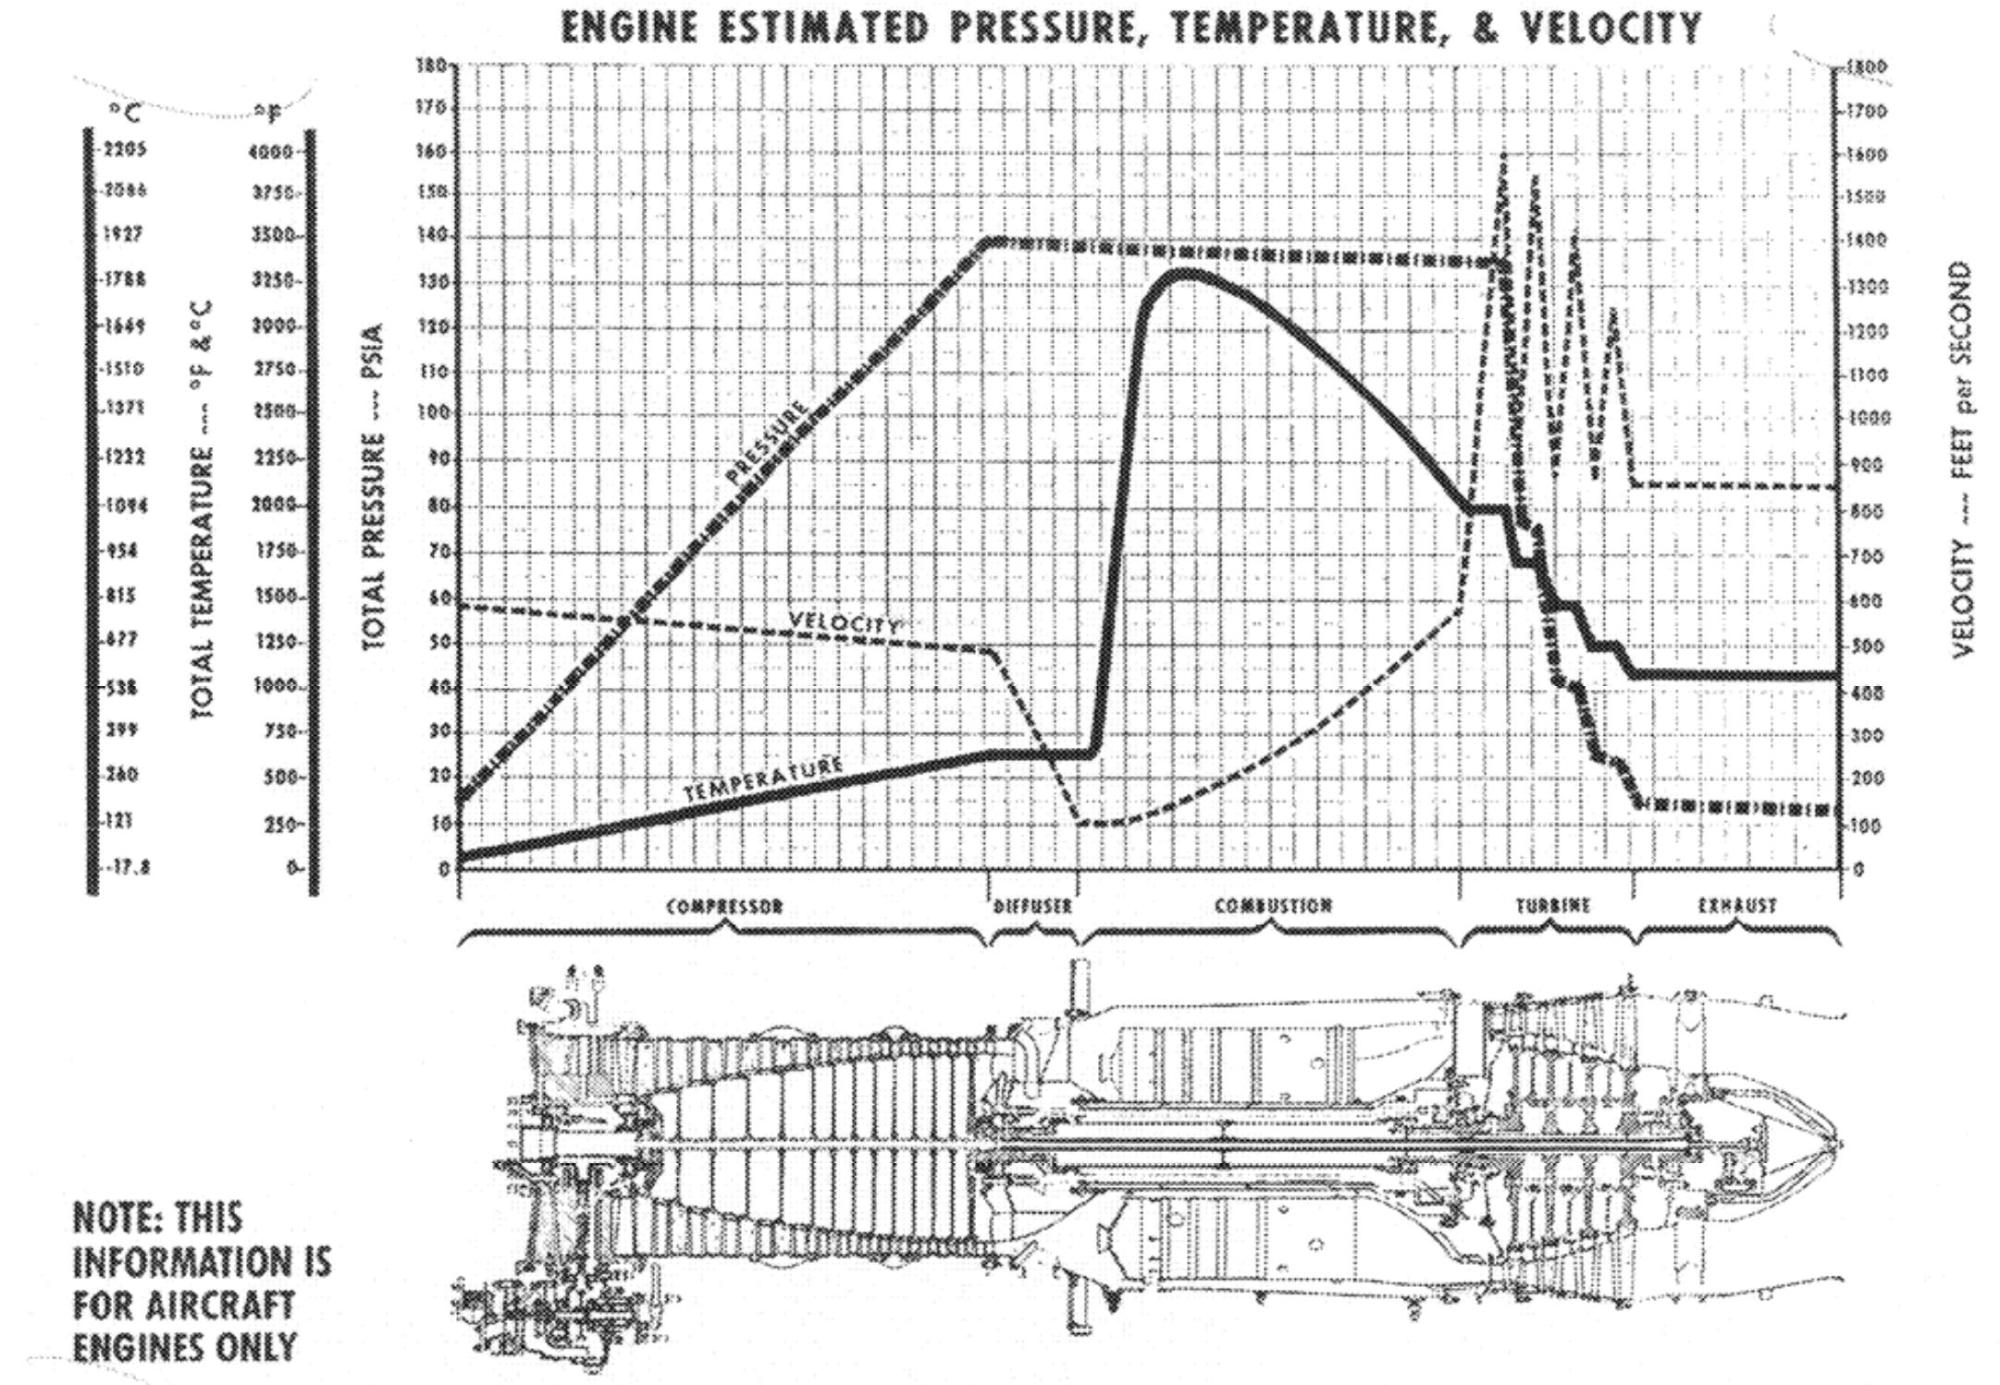 hight resolution of plot of engine flow parameters over the length of a turbojet